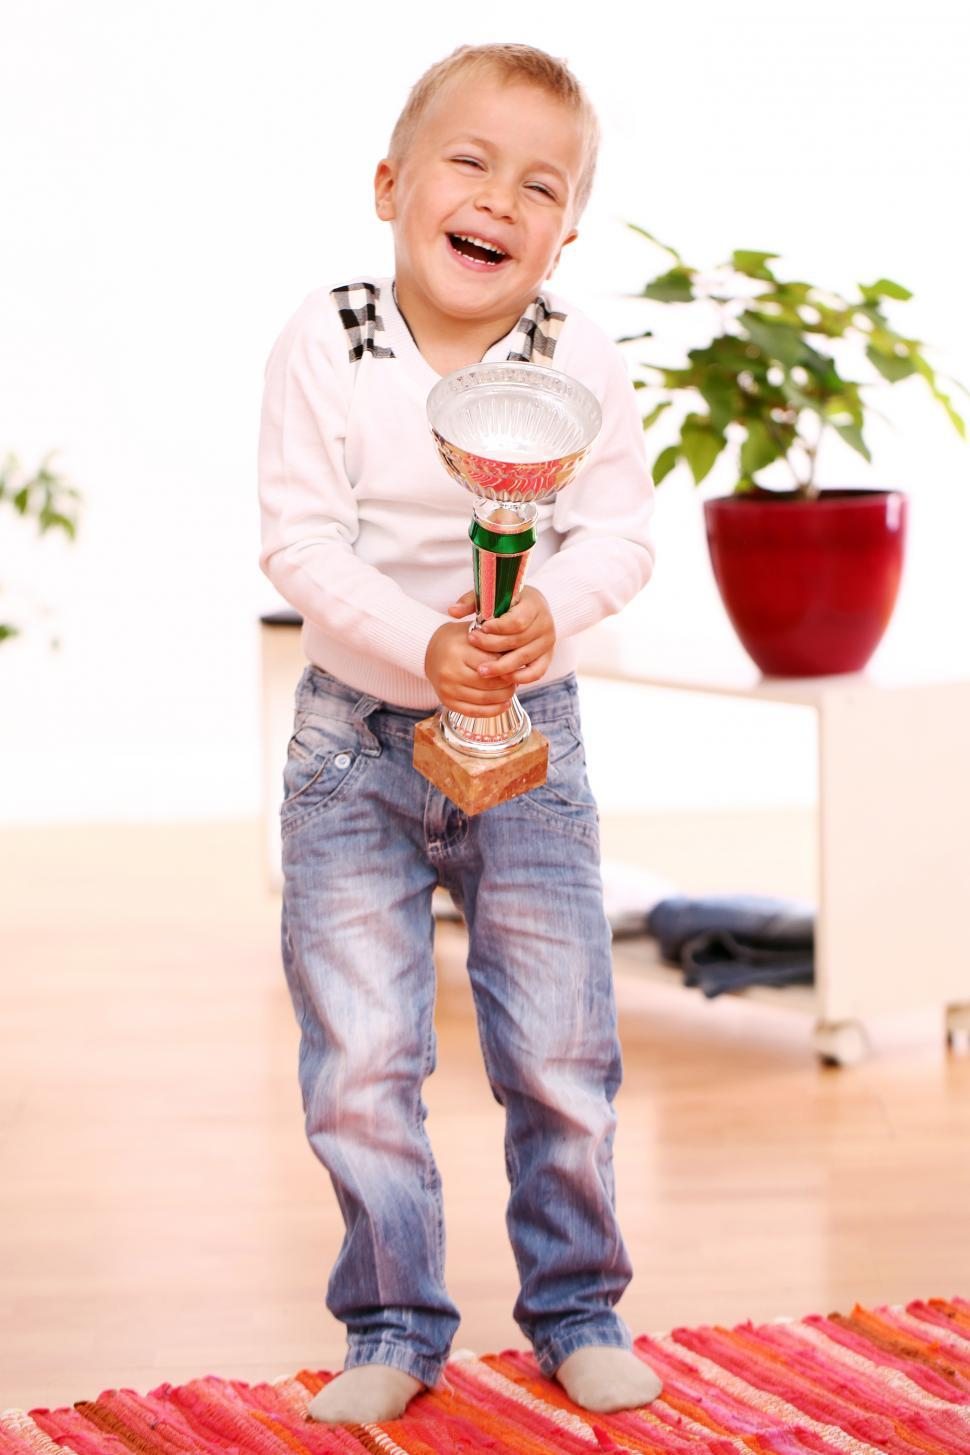 Download Free Stock Photo of Kid is excited to win a trophy